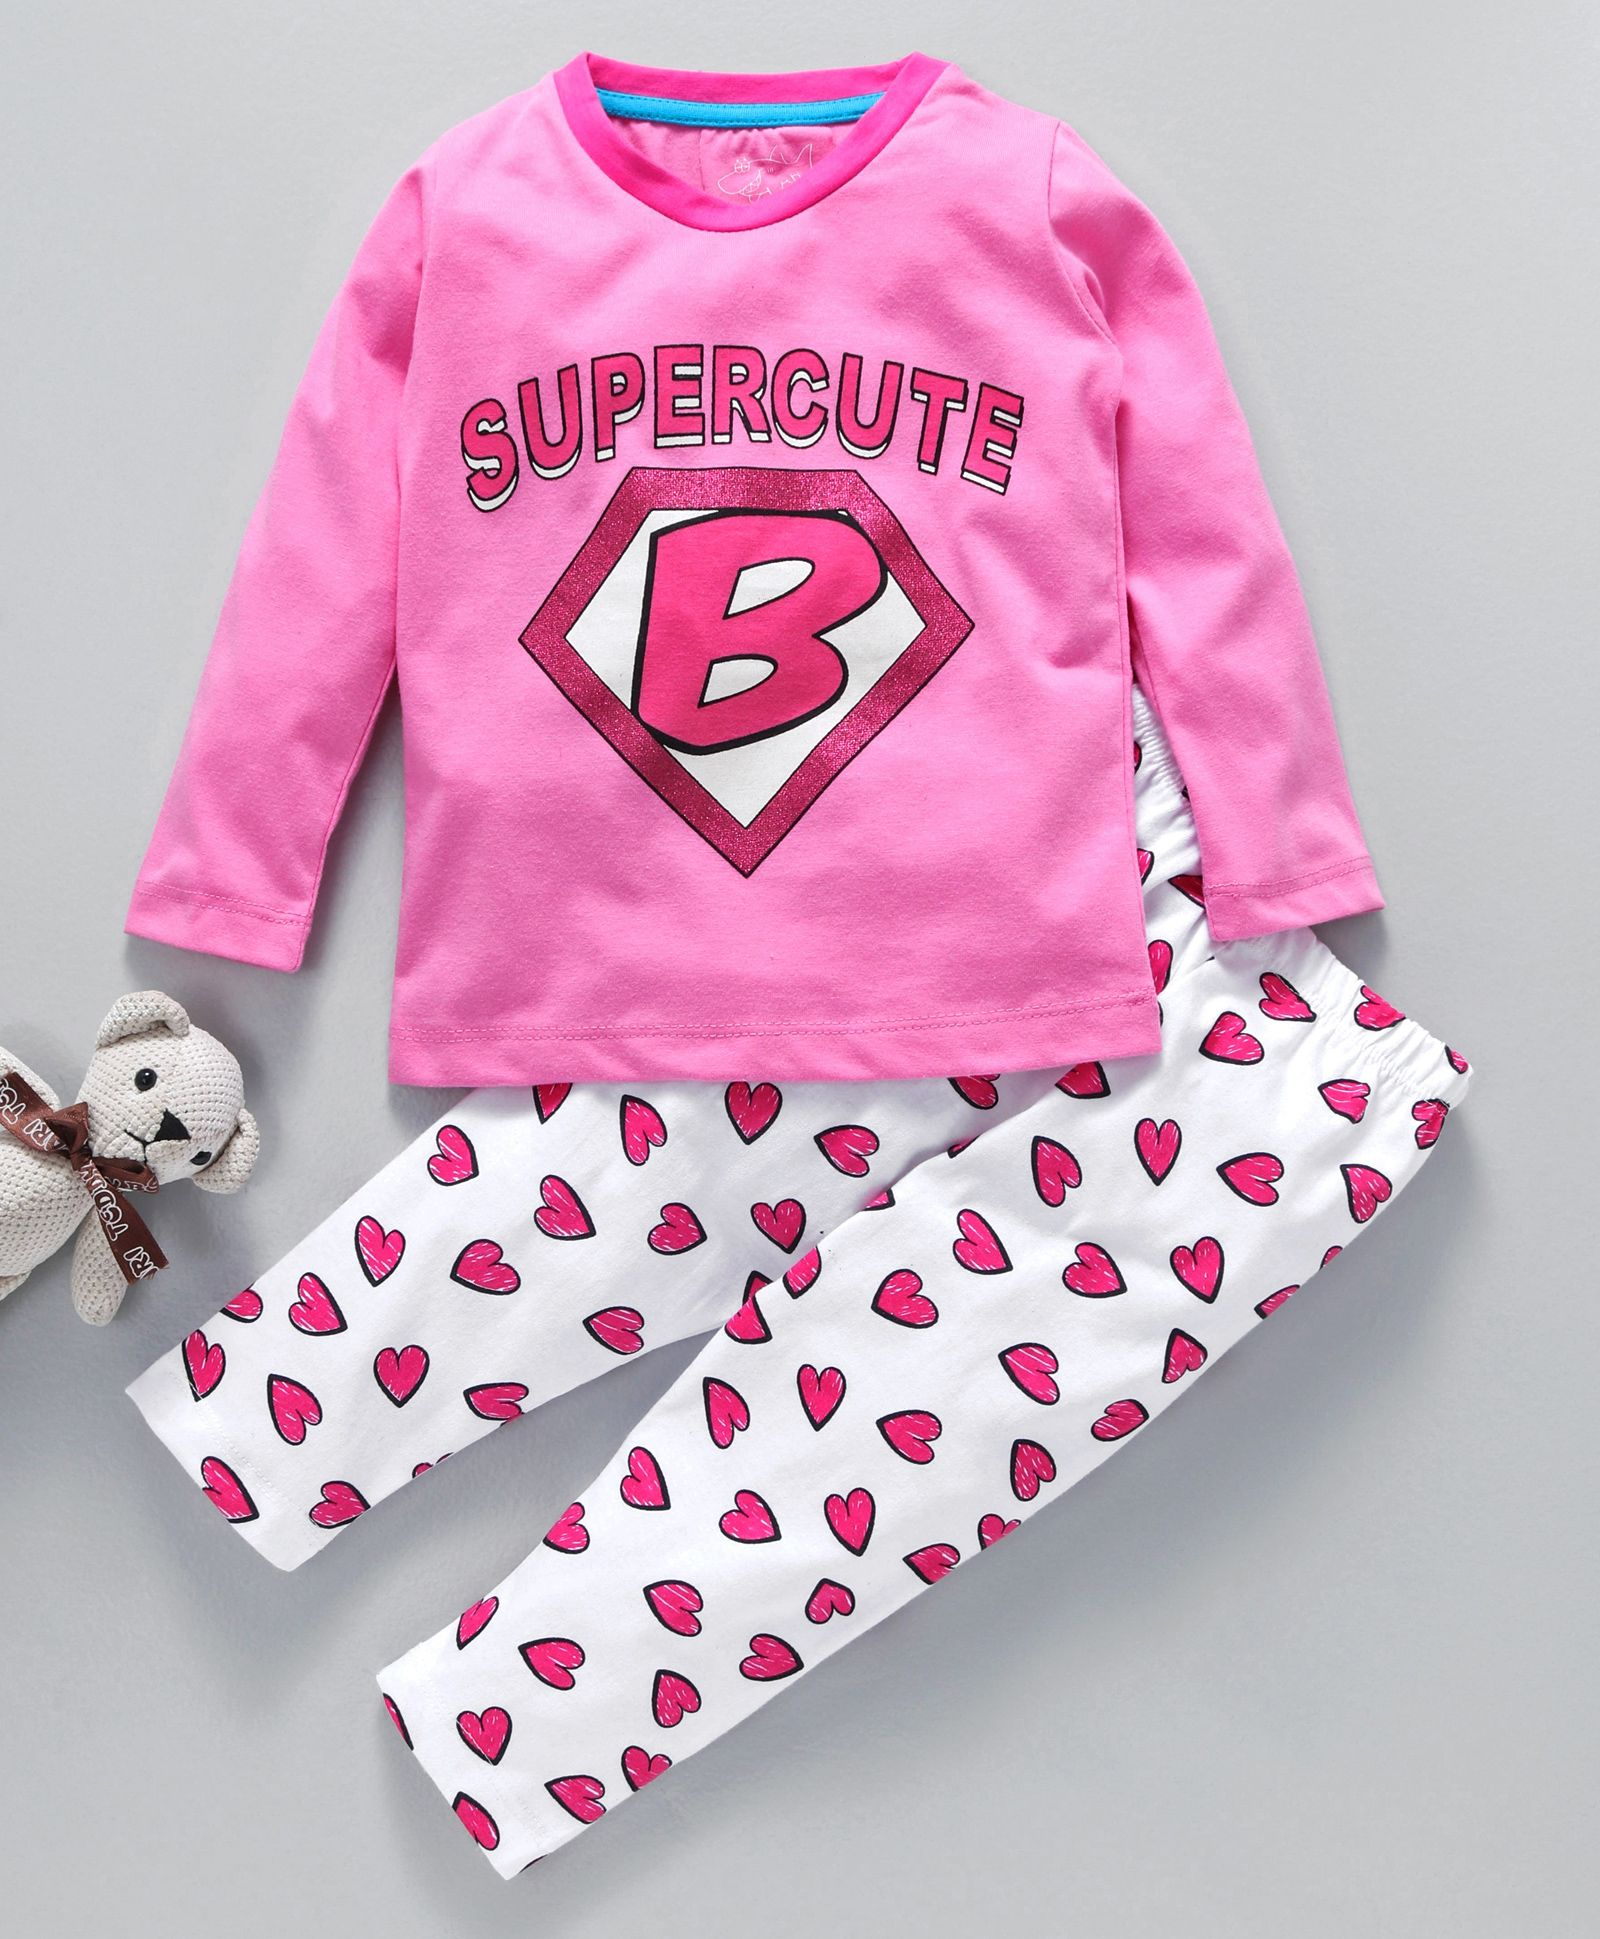 34d669cbc8 Lazy Shark Super Cute & Heart Print Night Suit Set - Pink. 2 to 3 Years ...